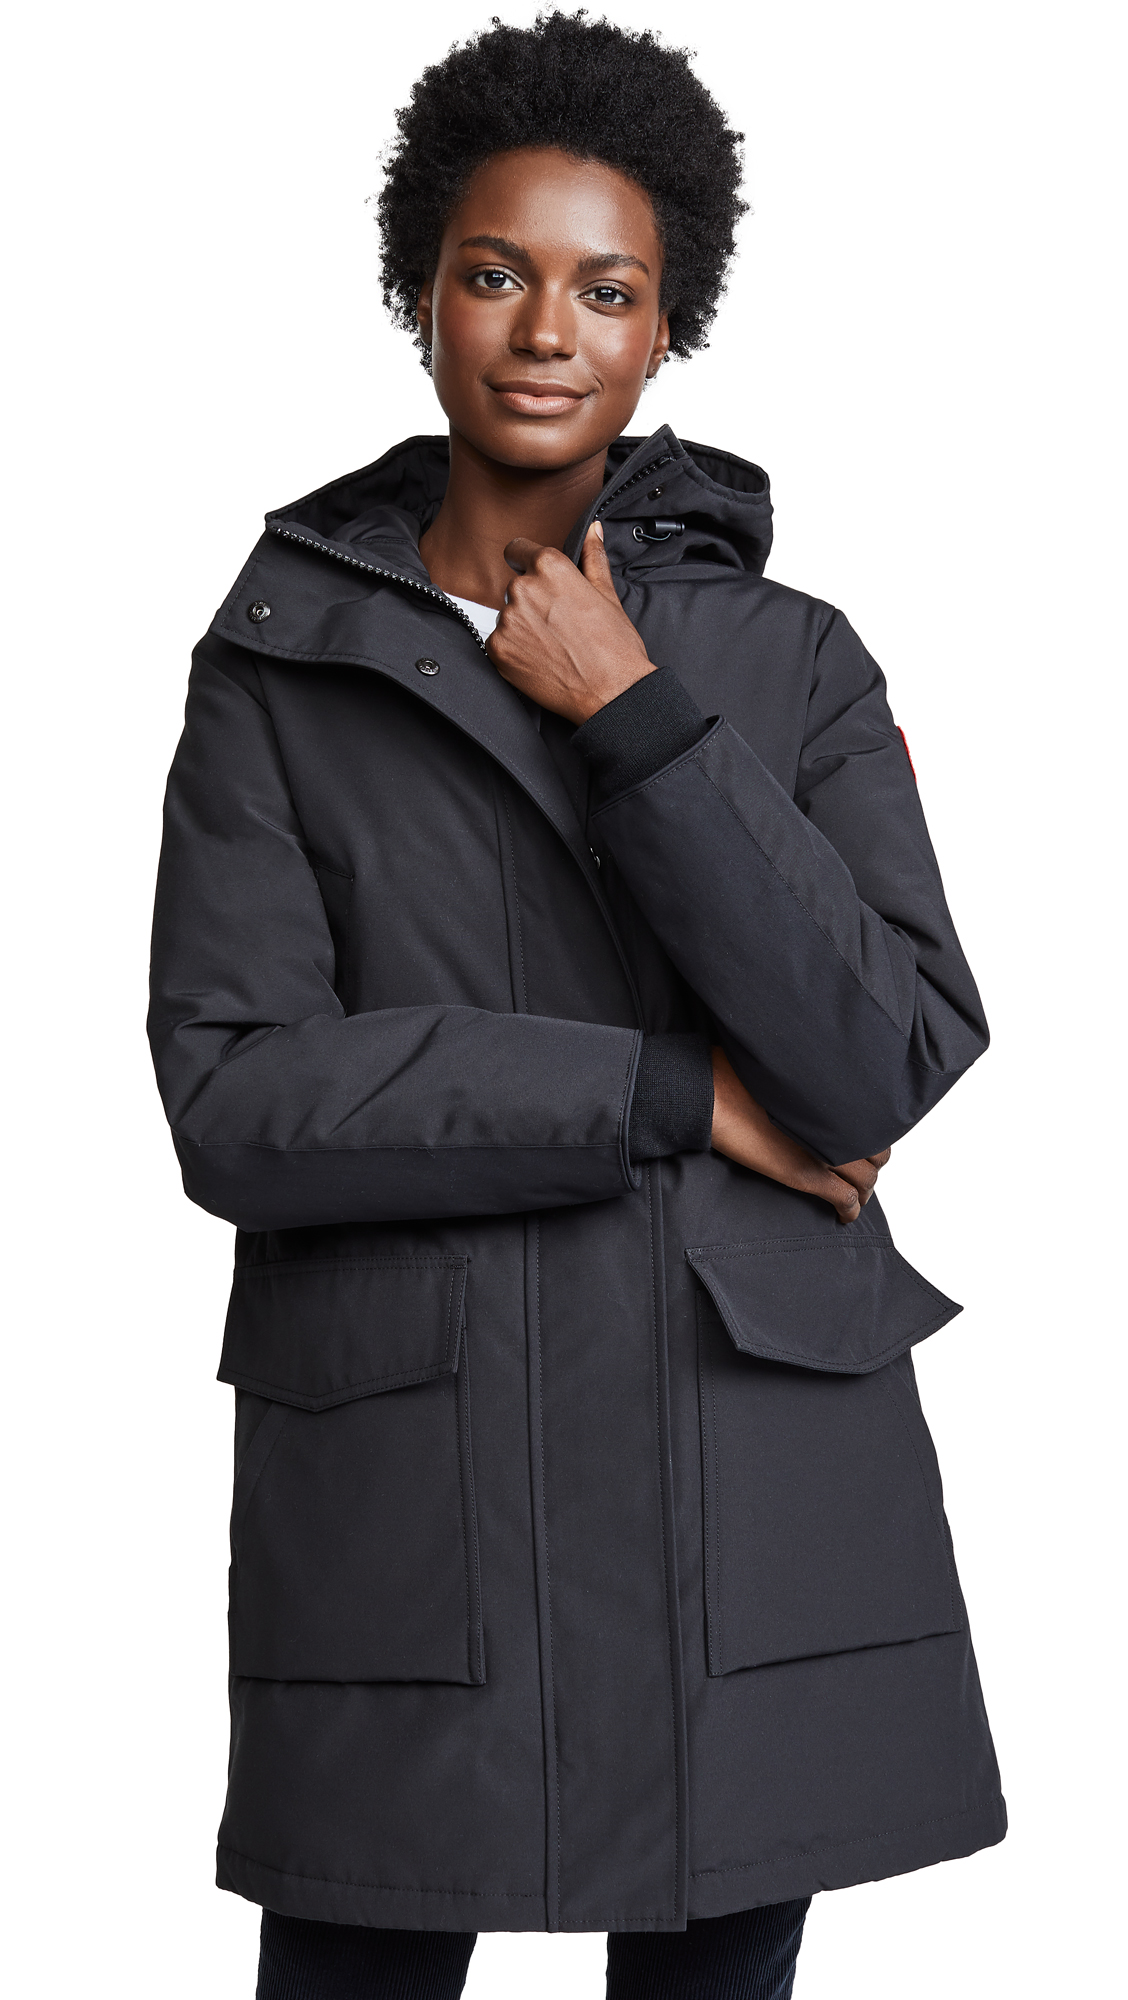 Buy Canada Goose Canmore Parka online beautiful Canada Goose Jackets, Coats, Down Jackets